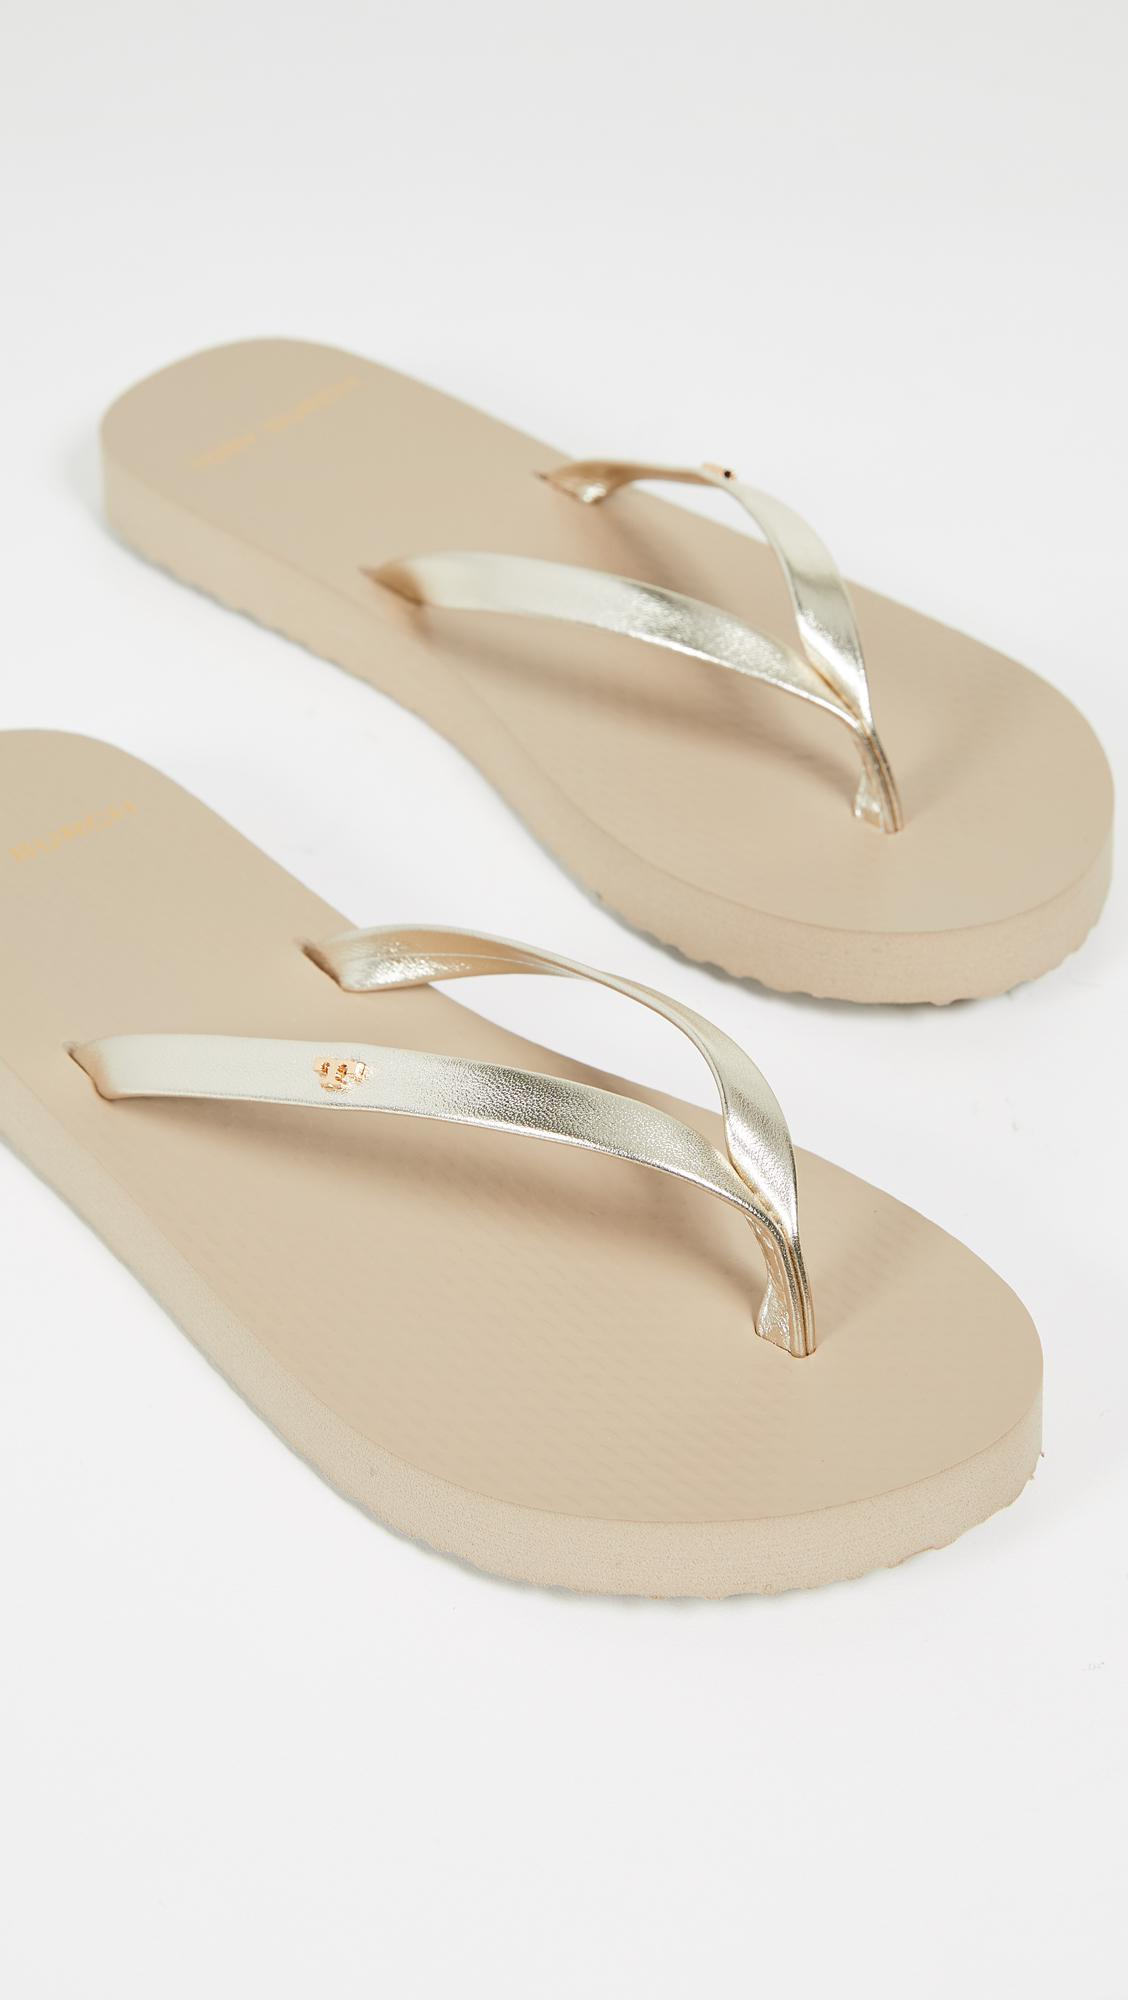 bf20b98fb06f Lyst - Tory Burch Metallic Leather Flip Flops in Metallic